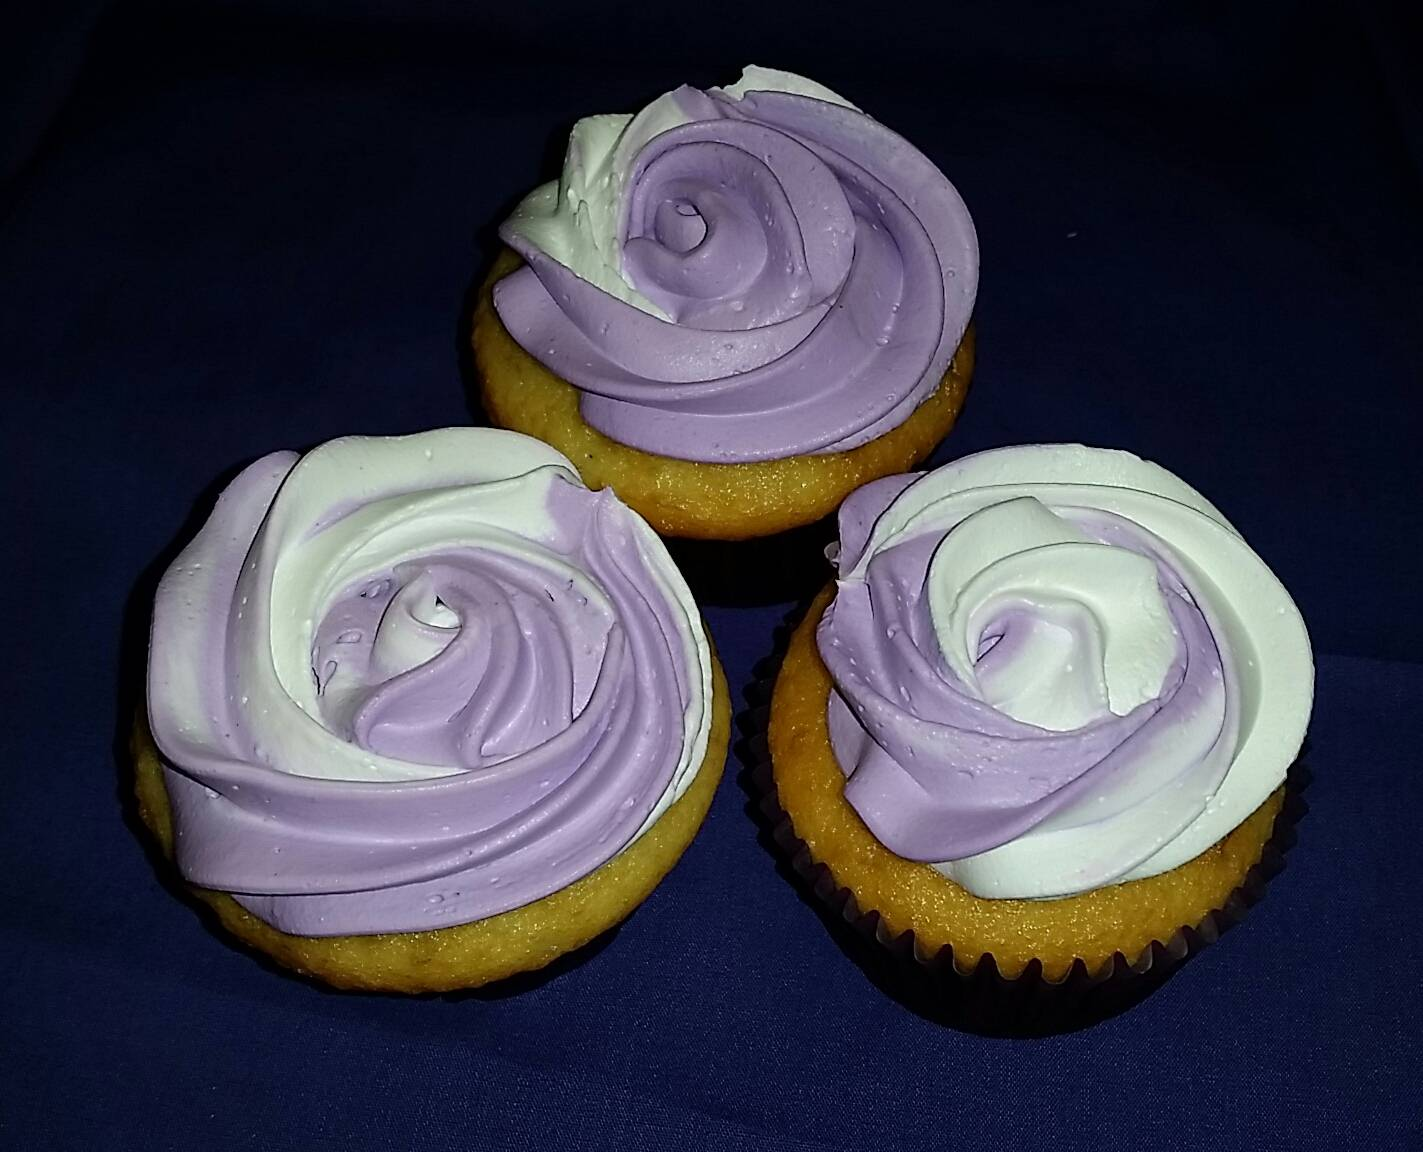 Two-tone cupcakes